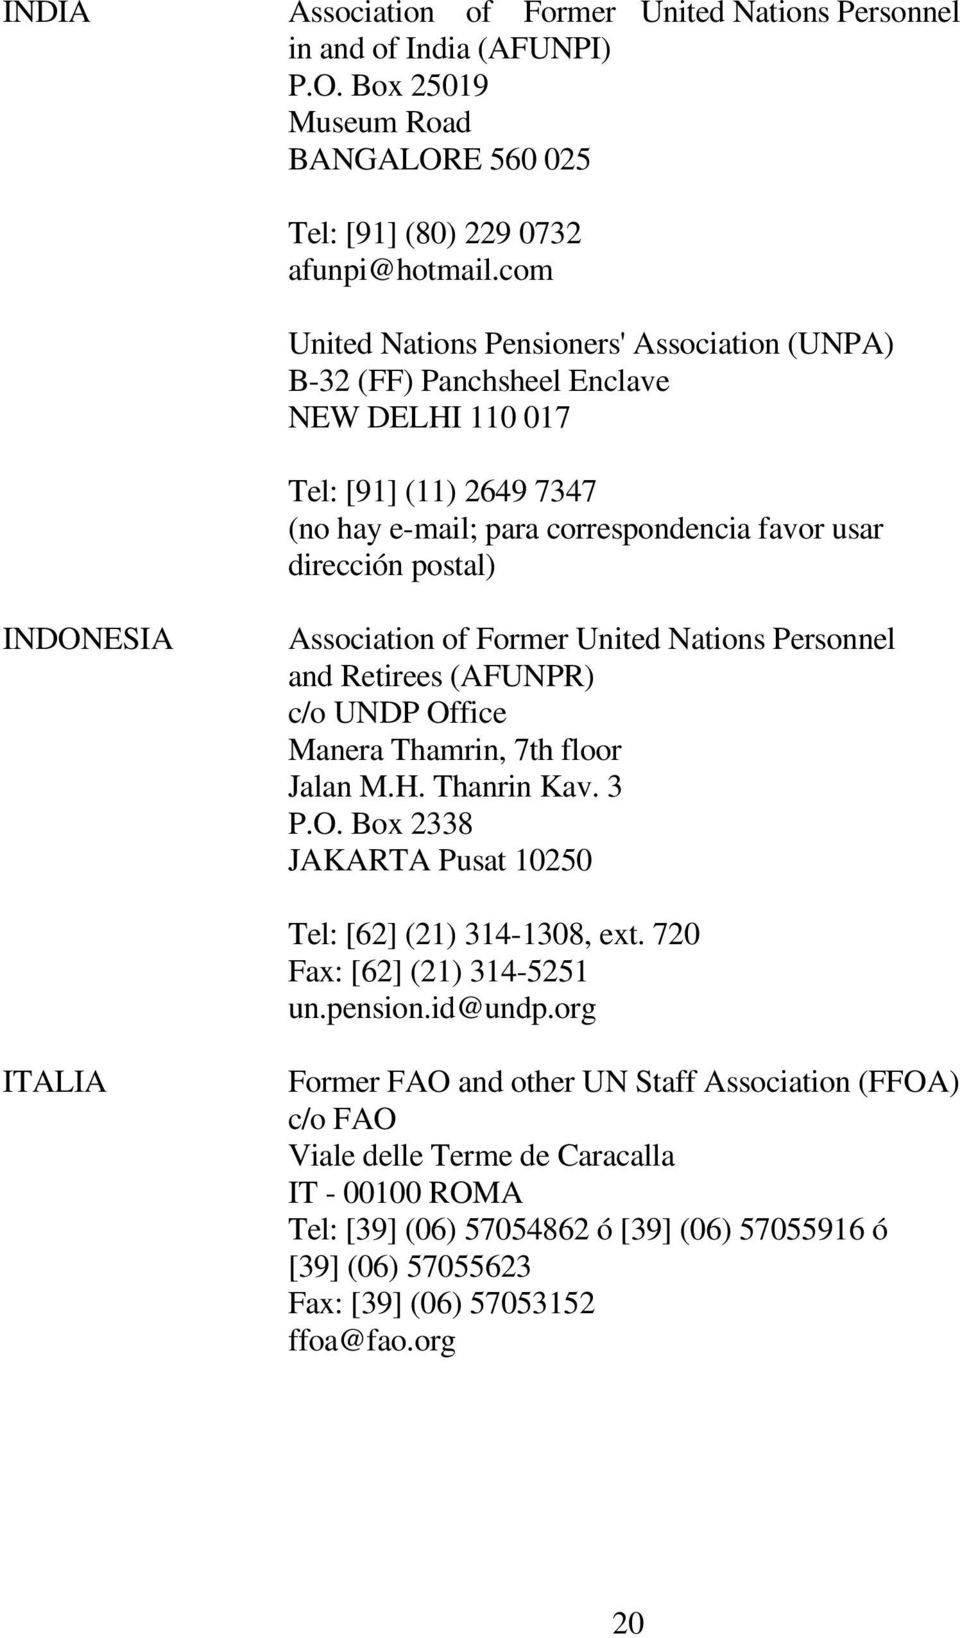 Association of Former United Nations Personnel and Retirees (AFUNPR) c/o UNDP Office Manera Thamrin, 7th floor Jalan M.H. Thanrin Kav. 3 P.O. Box 2338 JAKARTA Pusat 10250 Tel: [62] (21) 314-1308, ext.